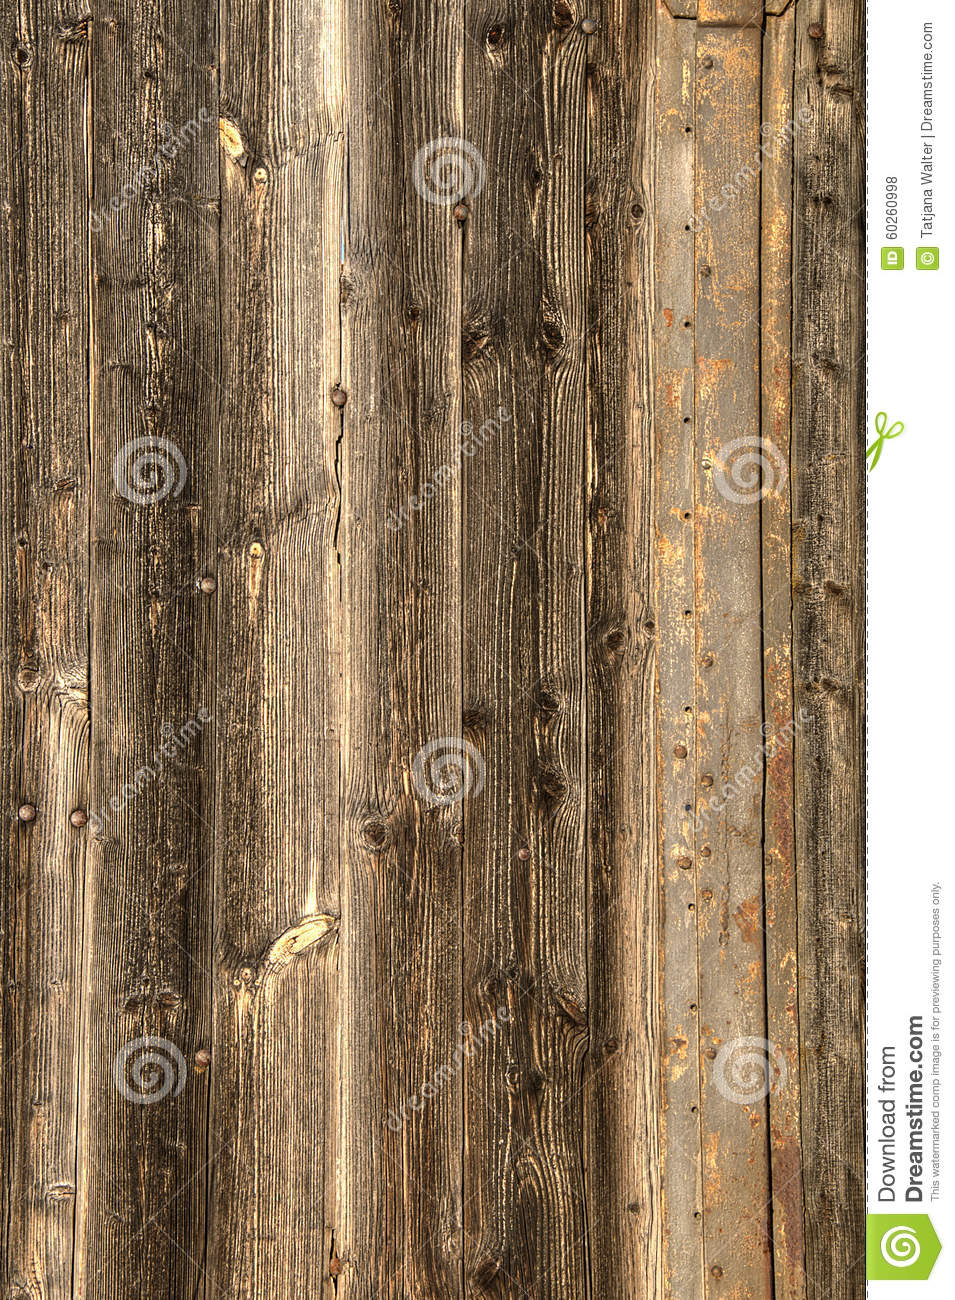 Old Barn Wood Floor Background Texture Stock Photo - Image ...